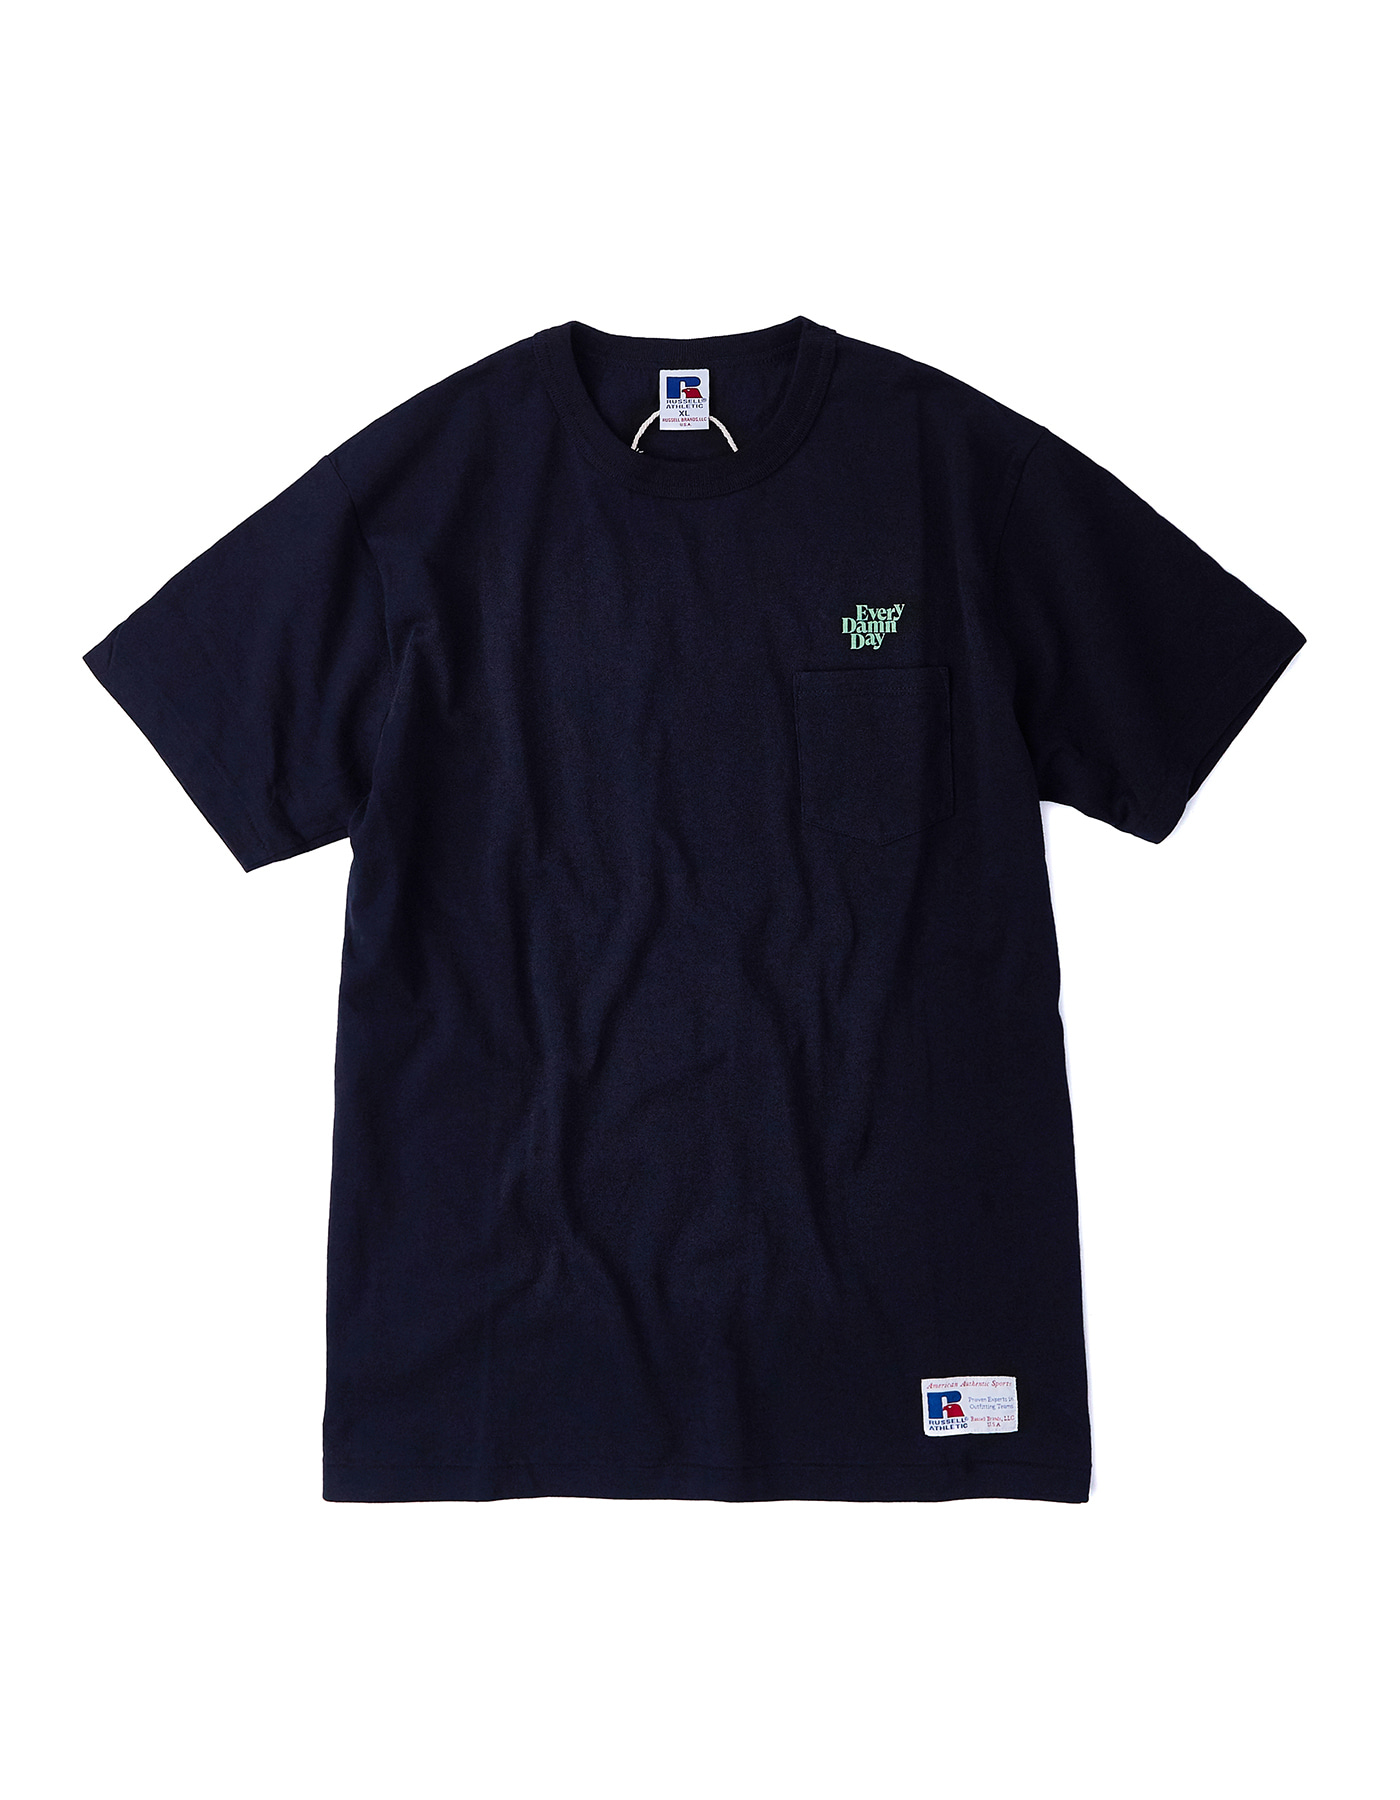 Every Damn Day Pocket T-shirts - Navy/Mint